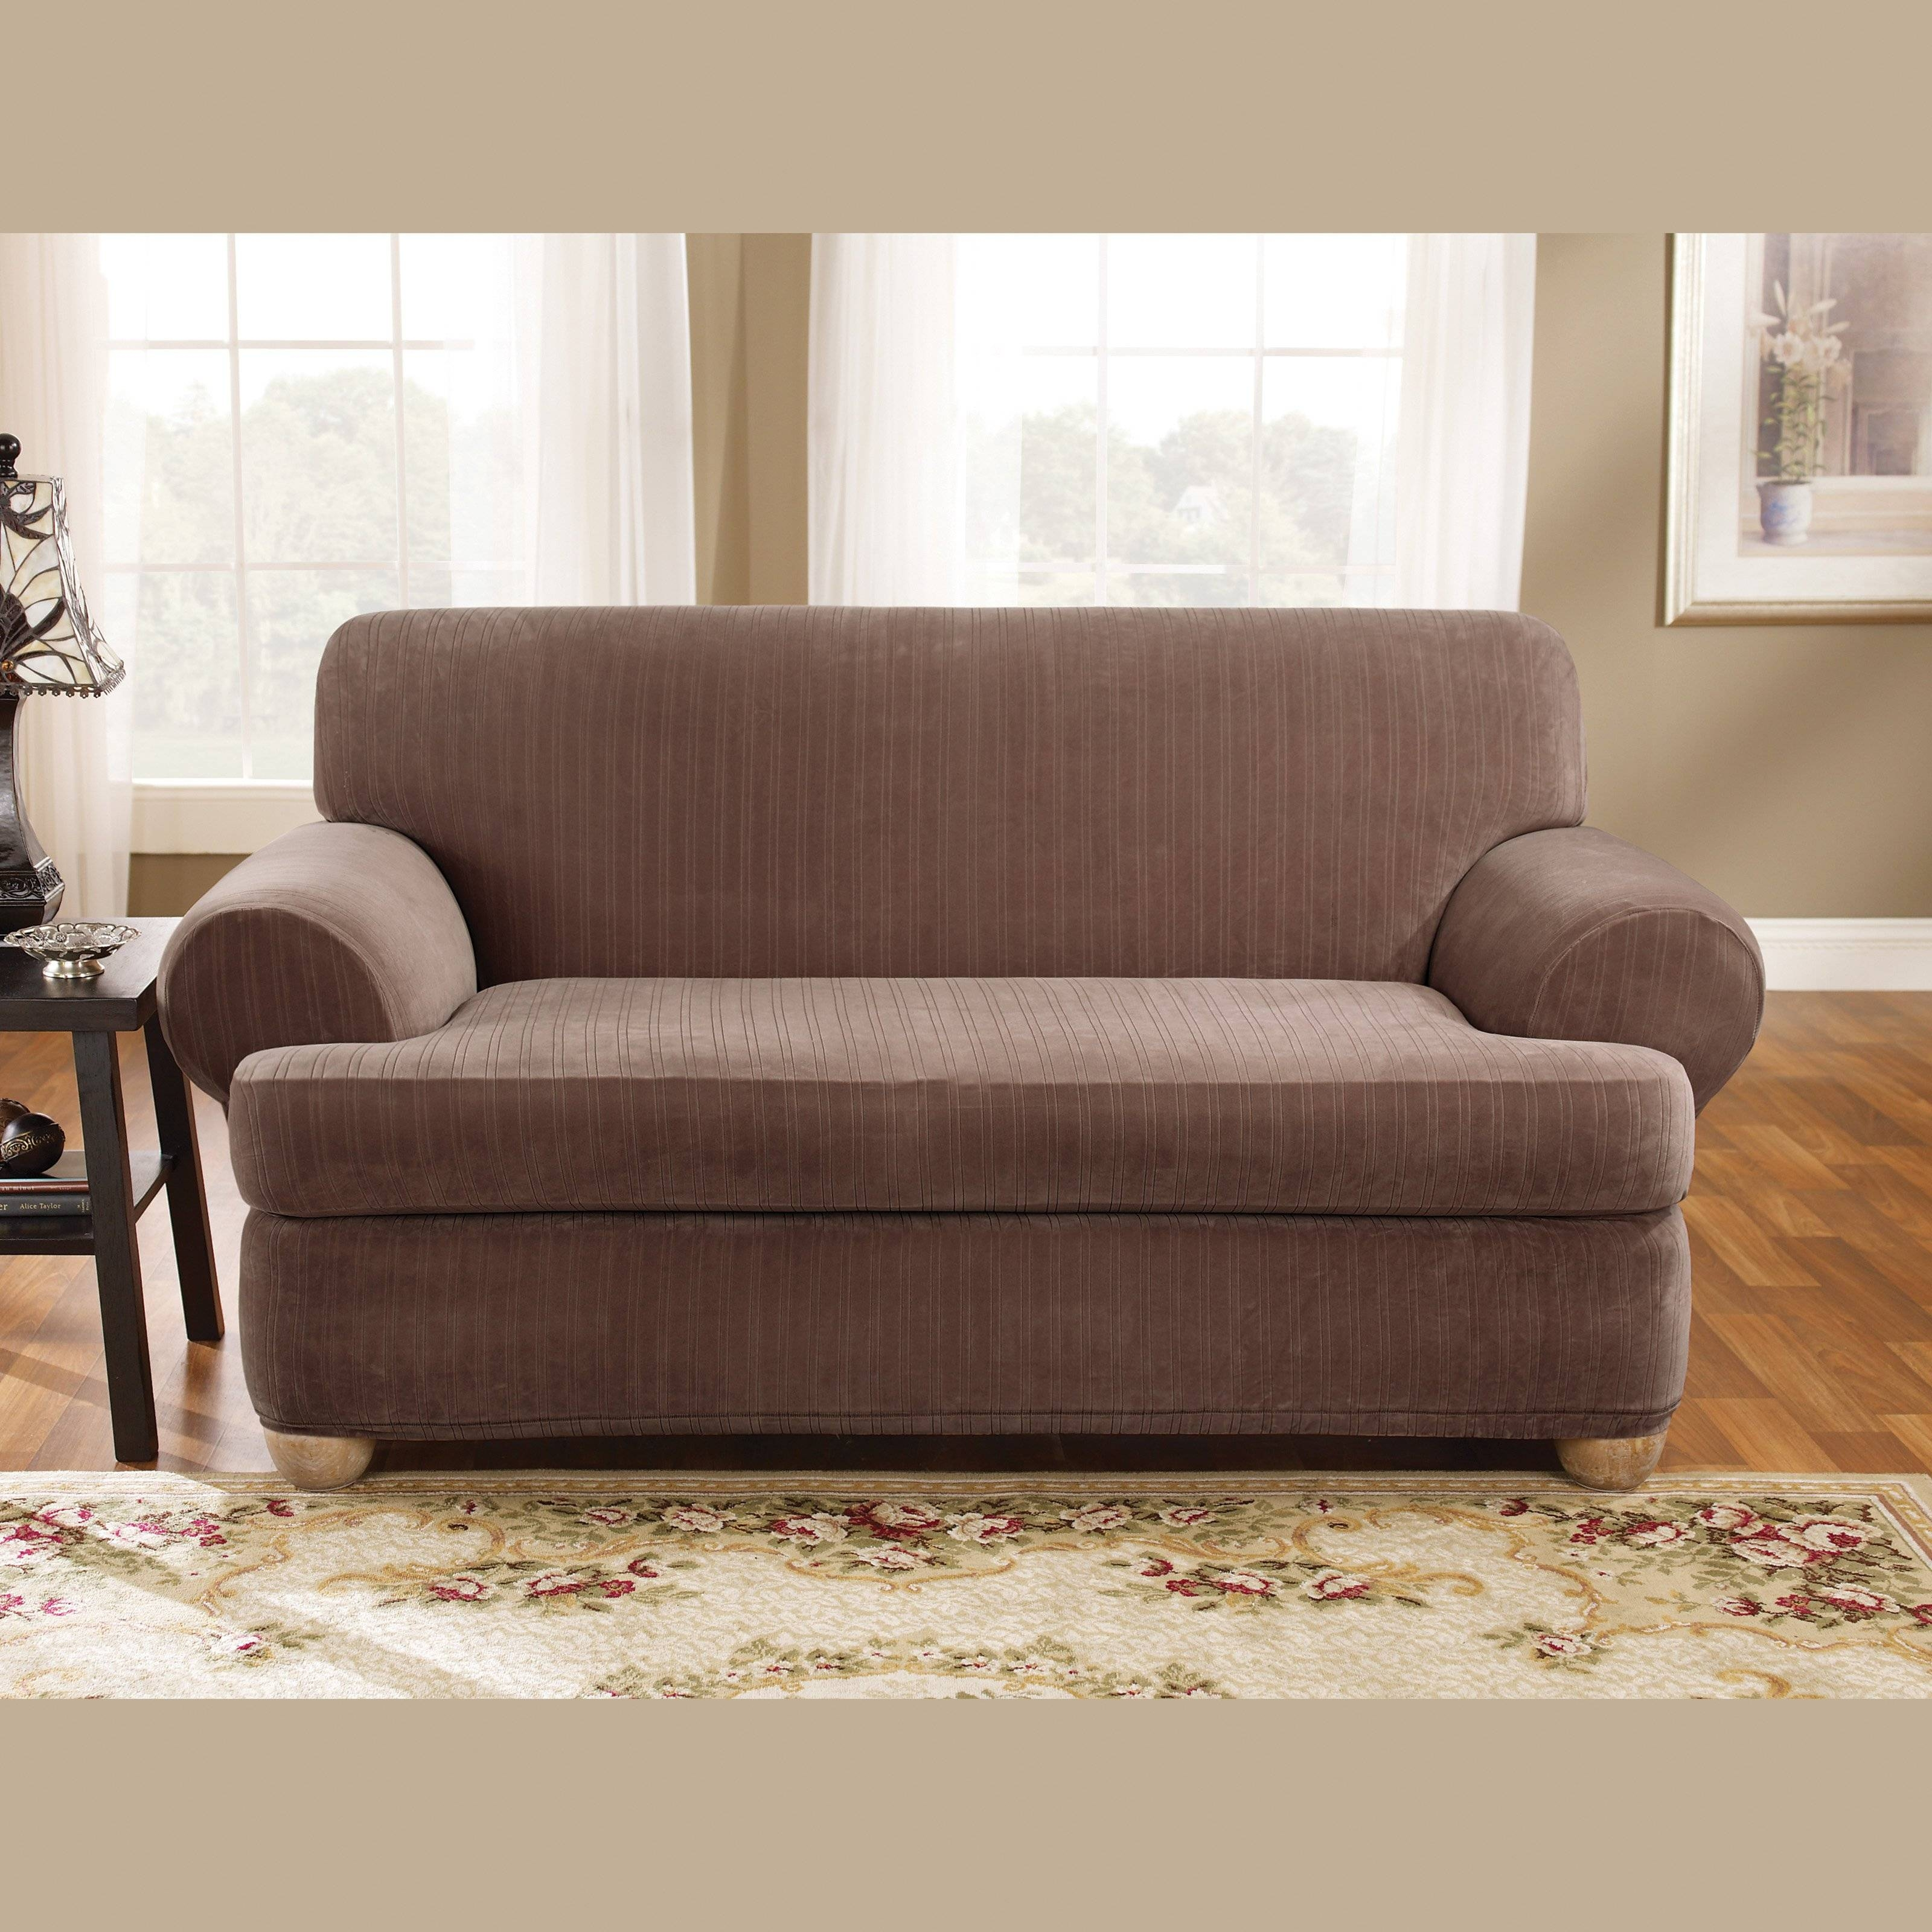 Tailor Fit Stretch Fit Sofa Slipcover | Hayneedle within Loveseat Slipcovers 3 Pieces (Image 14 of 15)